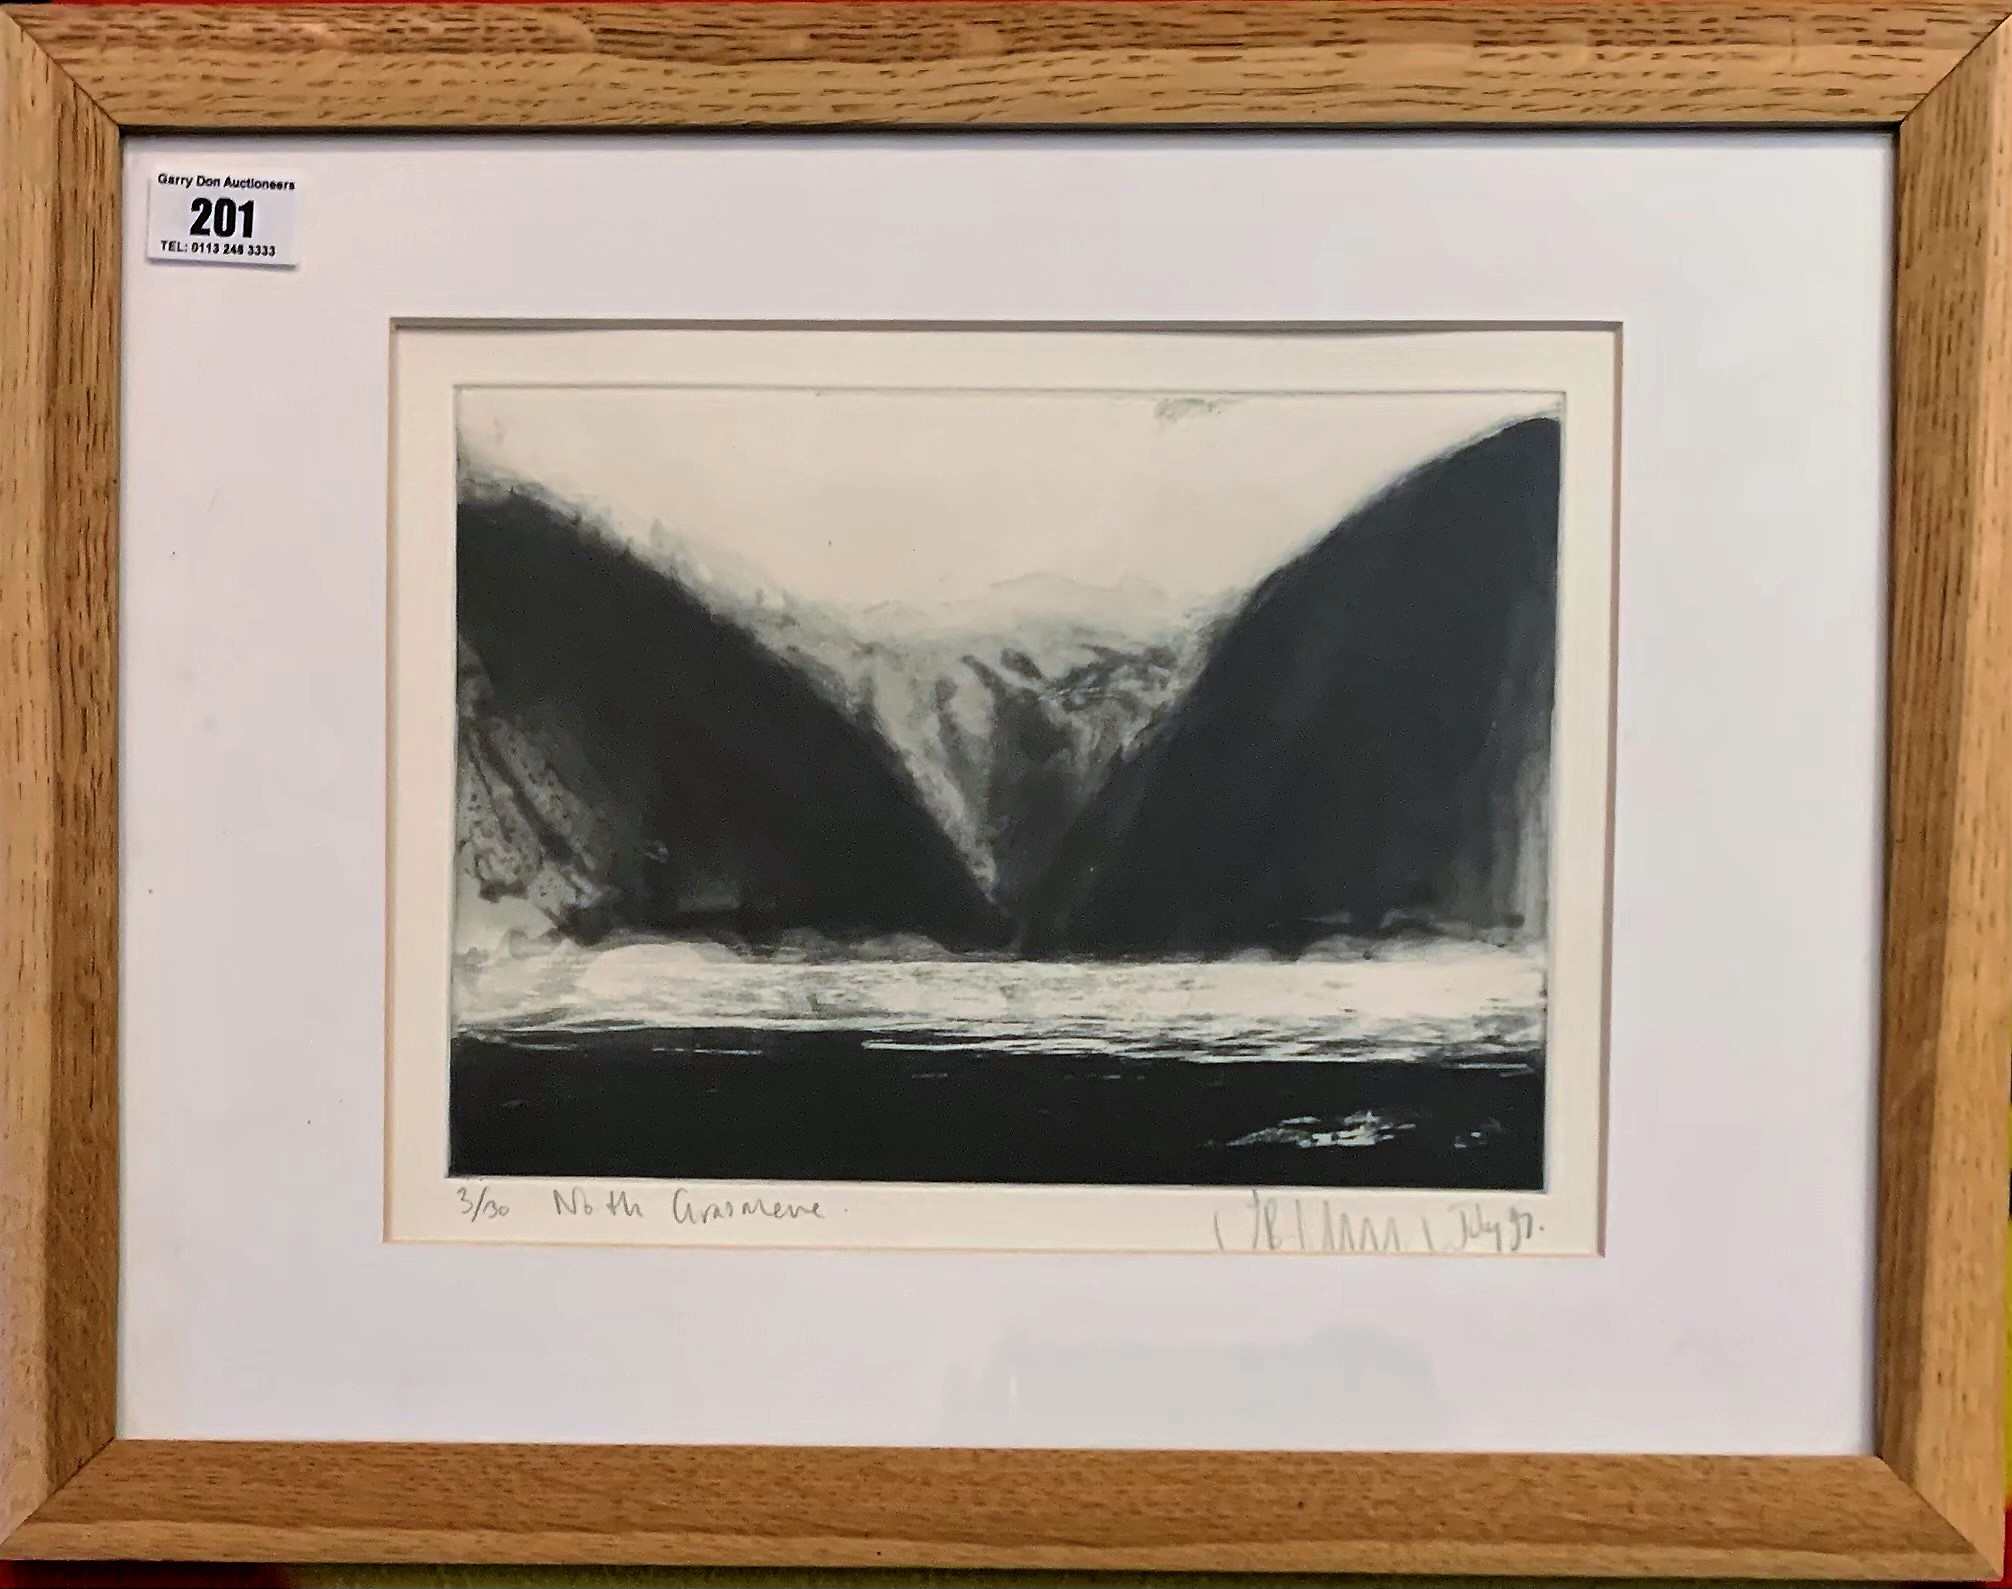 """Signed lithograph 'North Grasmere', no. 3/30. Image 9.5"""" x 7"""", frame 17.5"""" x 13.5"""". Good condition"""